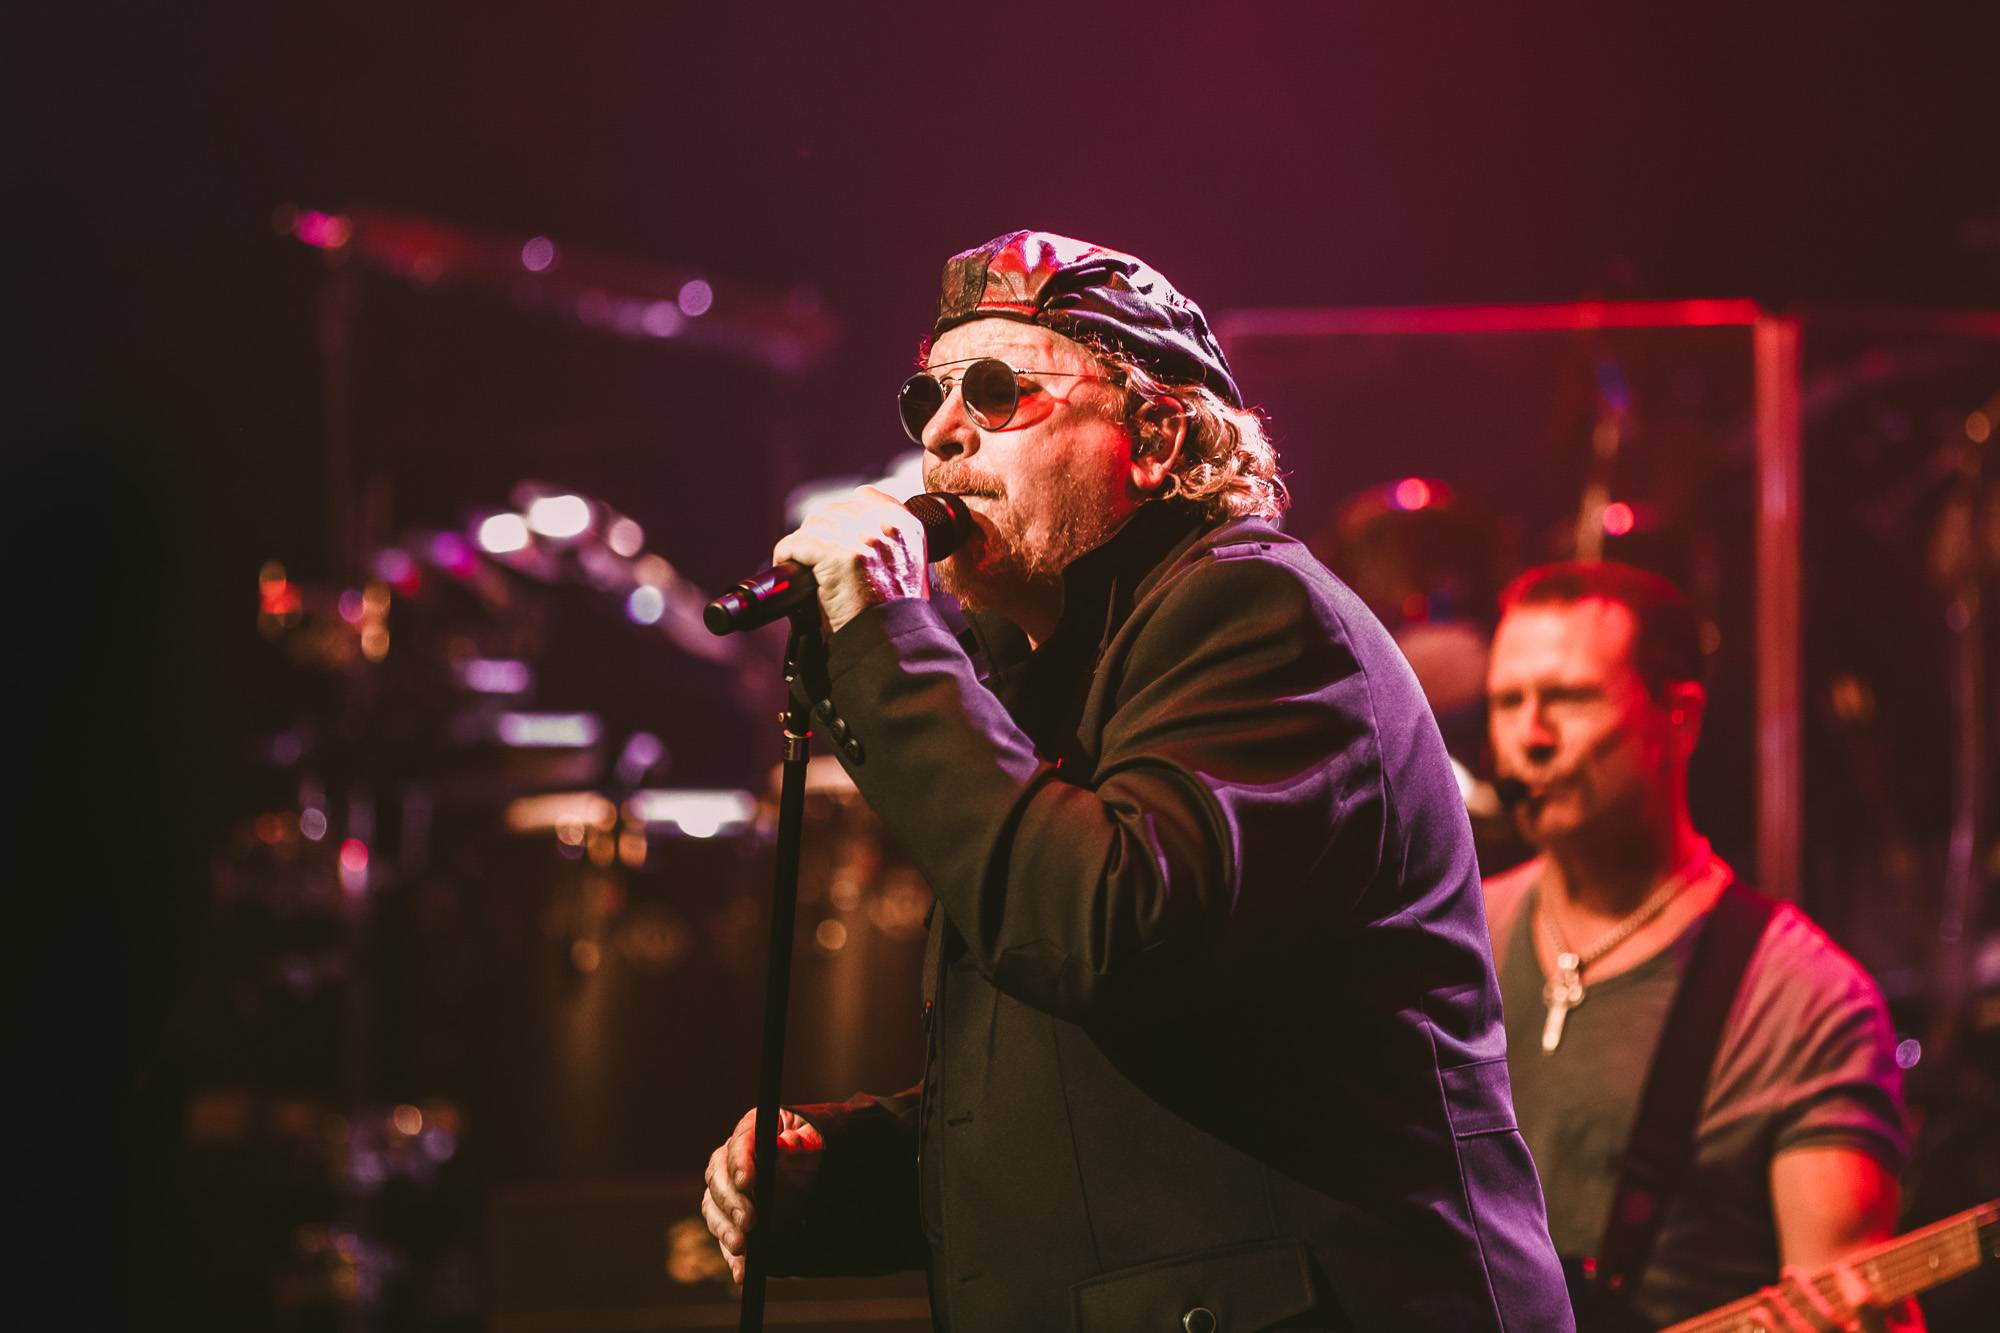 Toto at The Centre, Vancouver, July 30 2018—photos